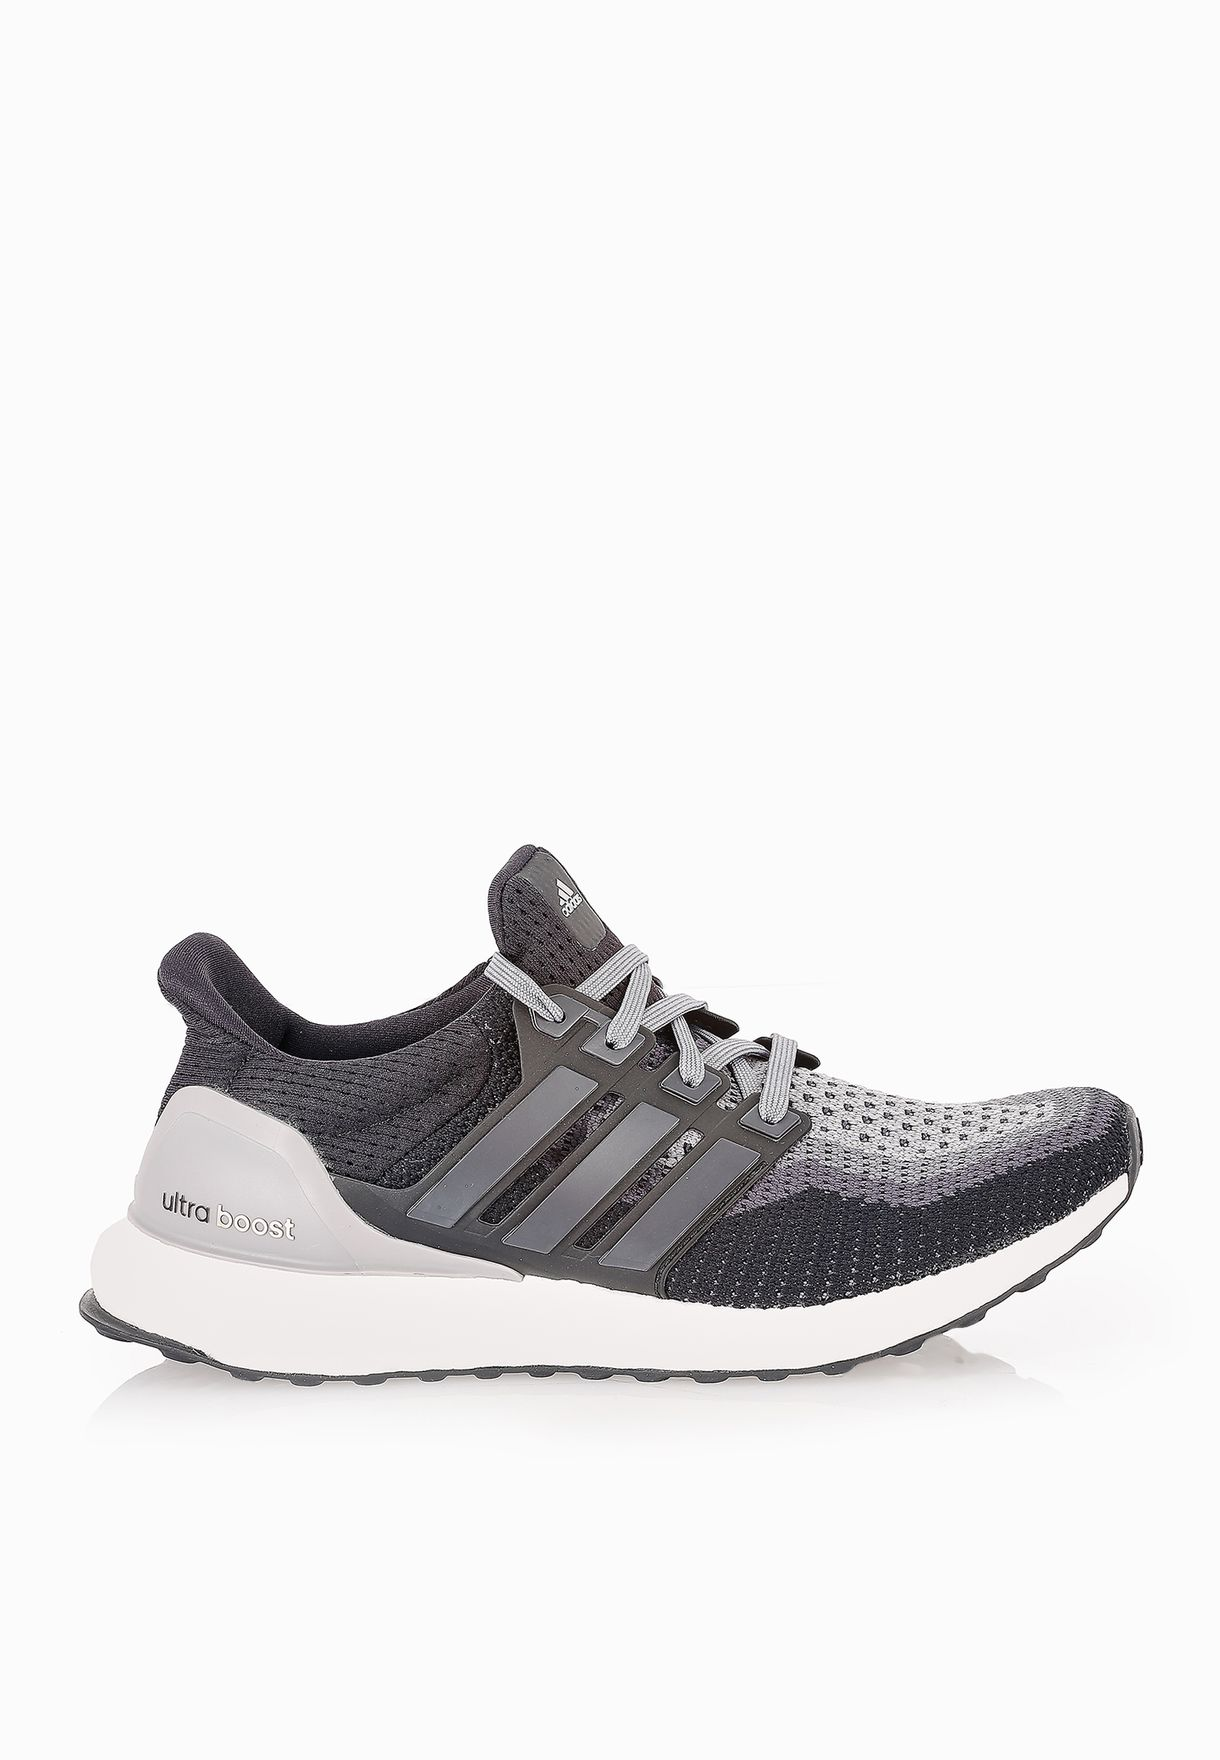 93ea07713a0 Shop adidas black Utra Boost AF5141 for Women in Globally - AD476SH67DQE